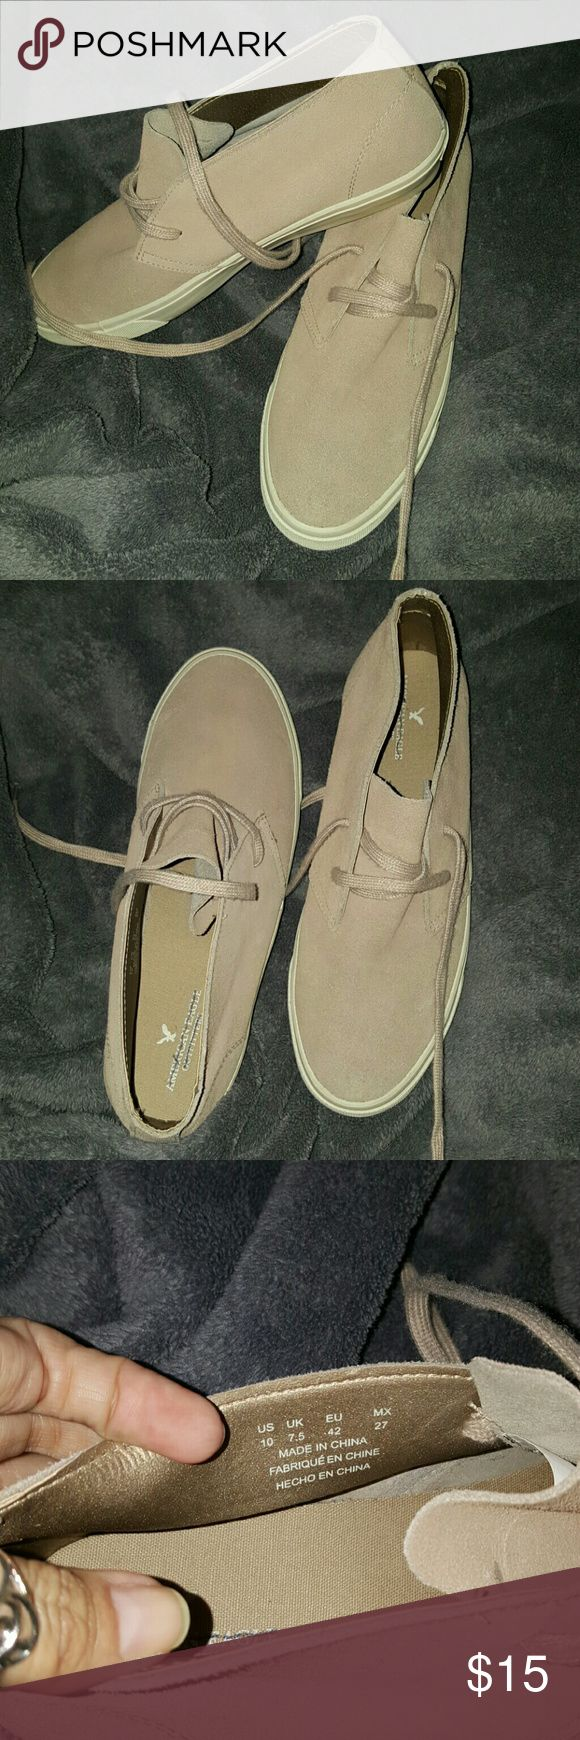 AMERICAN Eagle Outfitters Suede shoes Nude colored suede shoes . There is a pen line through the name inside the shoes they were purchased from Marshall's and came this way . They have not been worn only tried on inside . American Eagle Outfitters Shoes Sneakers